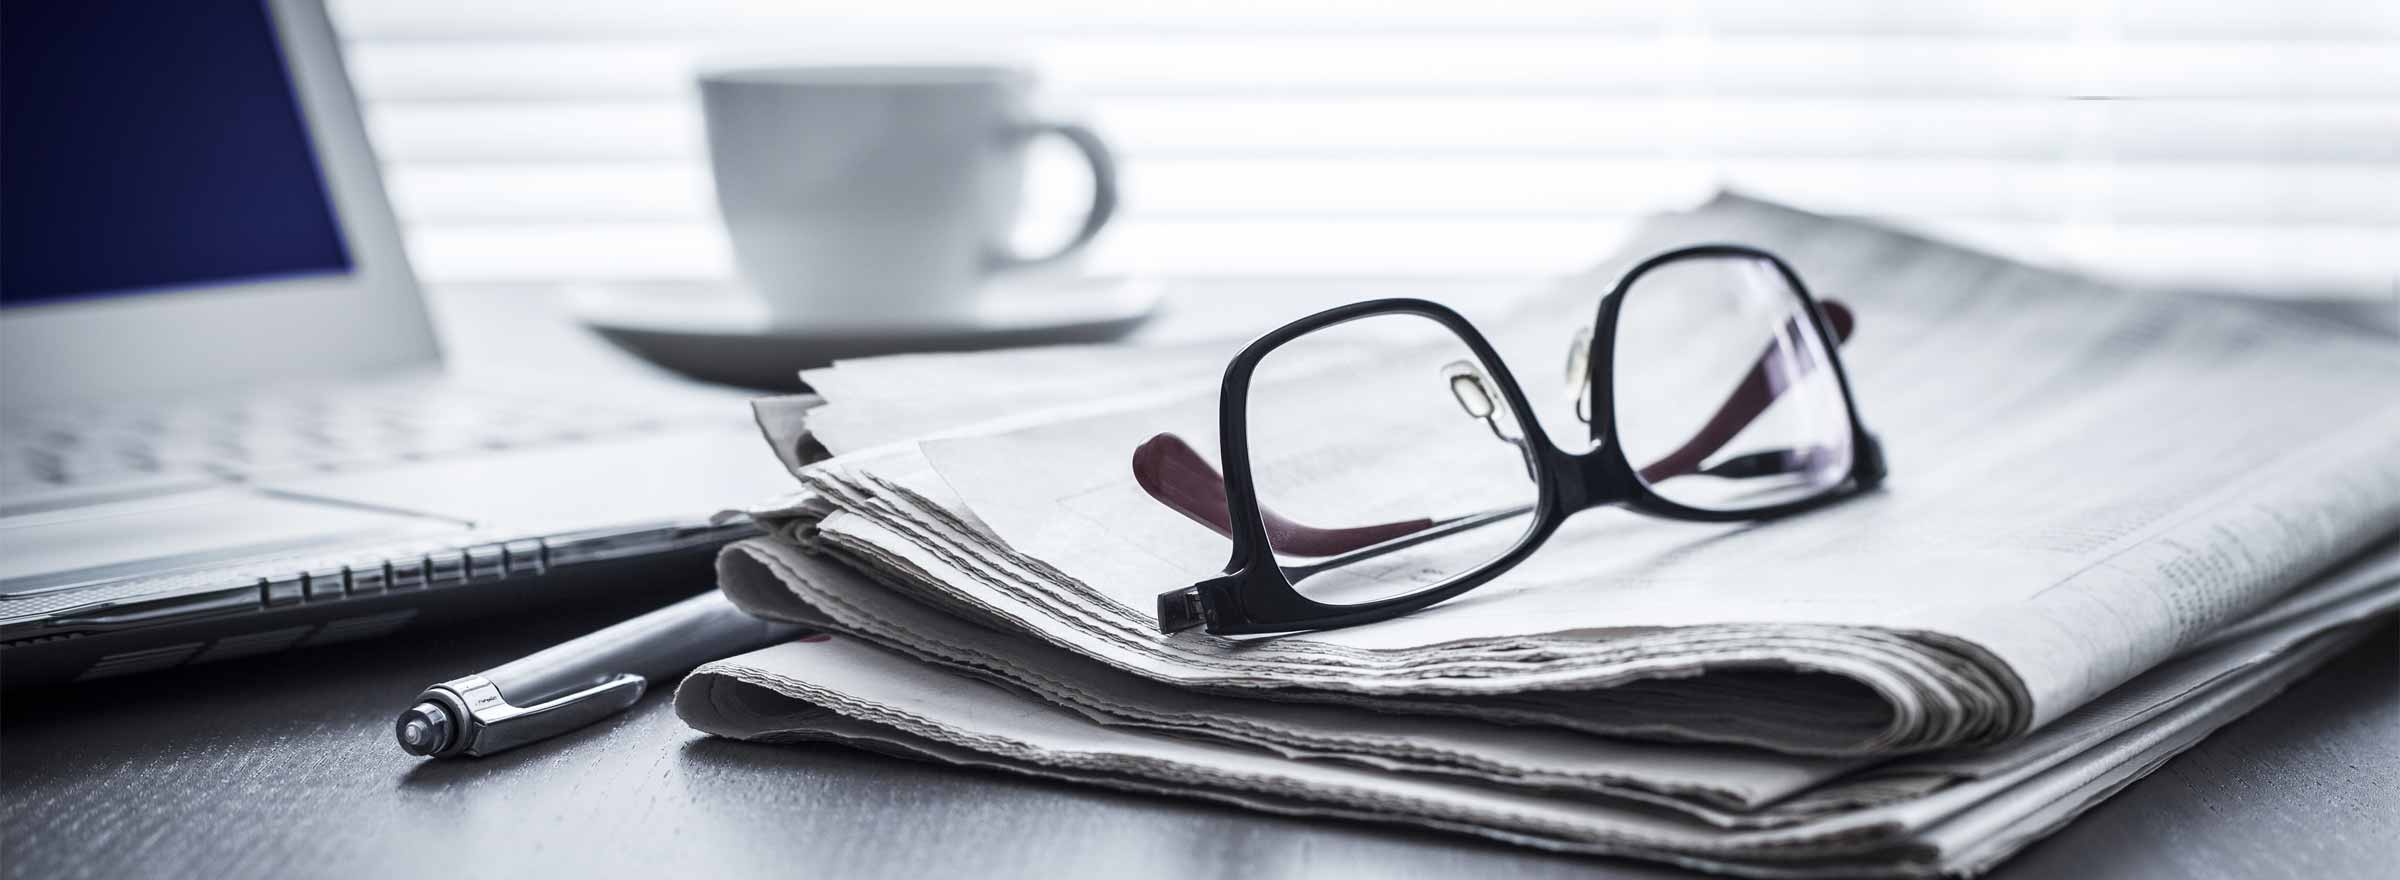 eyeglasses resting on a newspaper in front of a computer